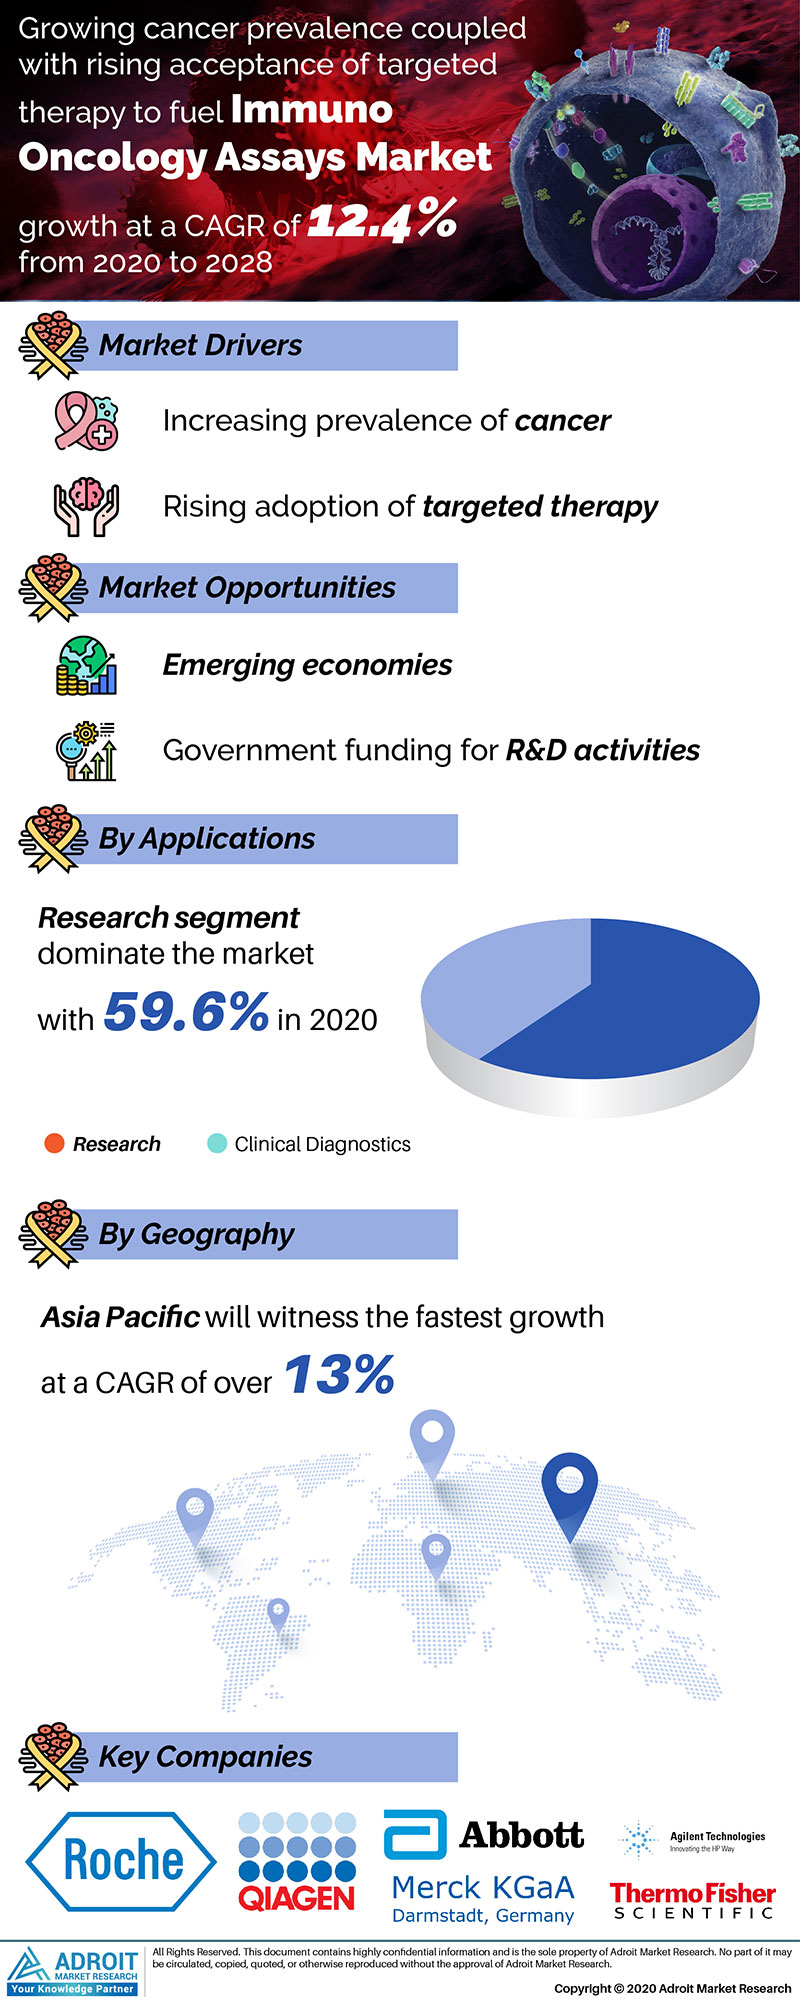 Immuno Oncology Assays Market by Material, Application, and Region, Global Forecasts 2018 to 2025